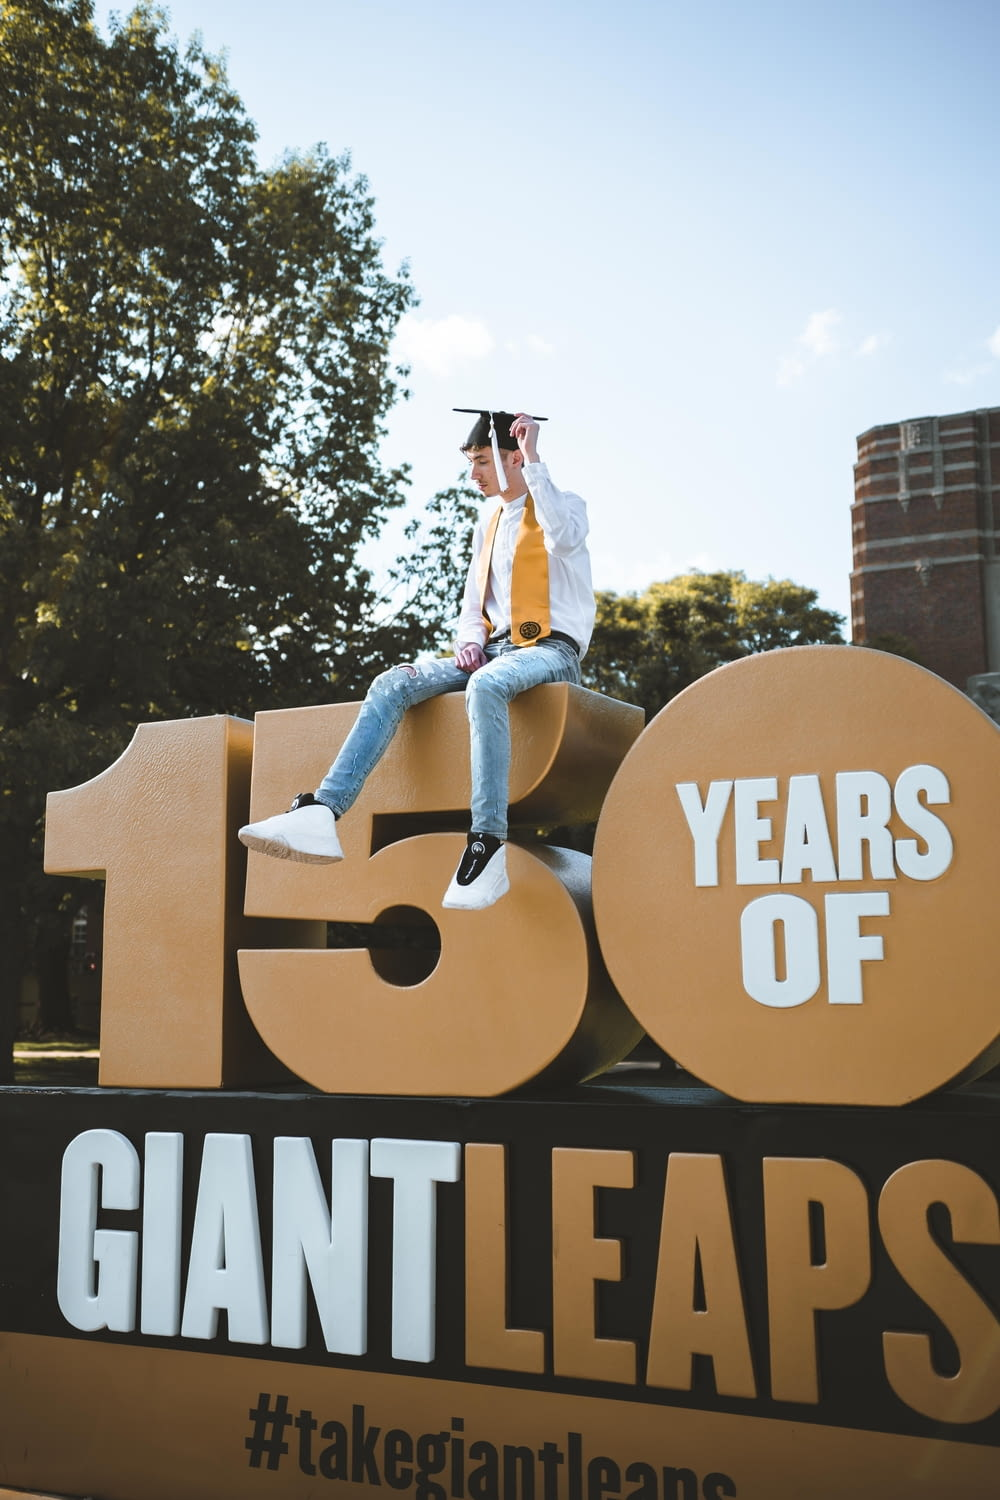 man with black mortar board sitting on 150 years giant leaps building